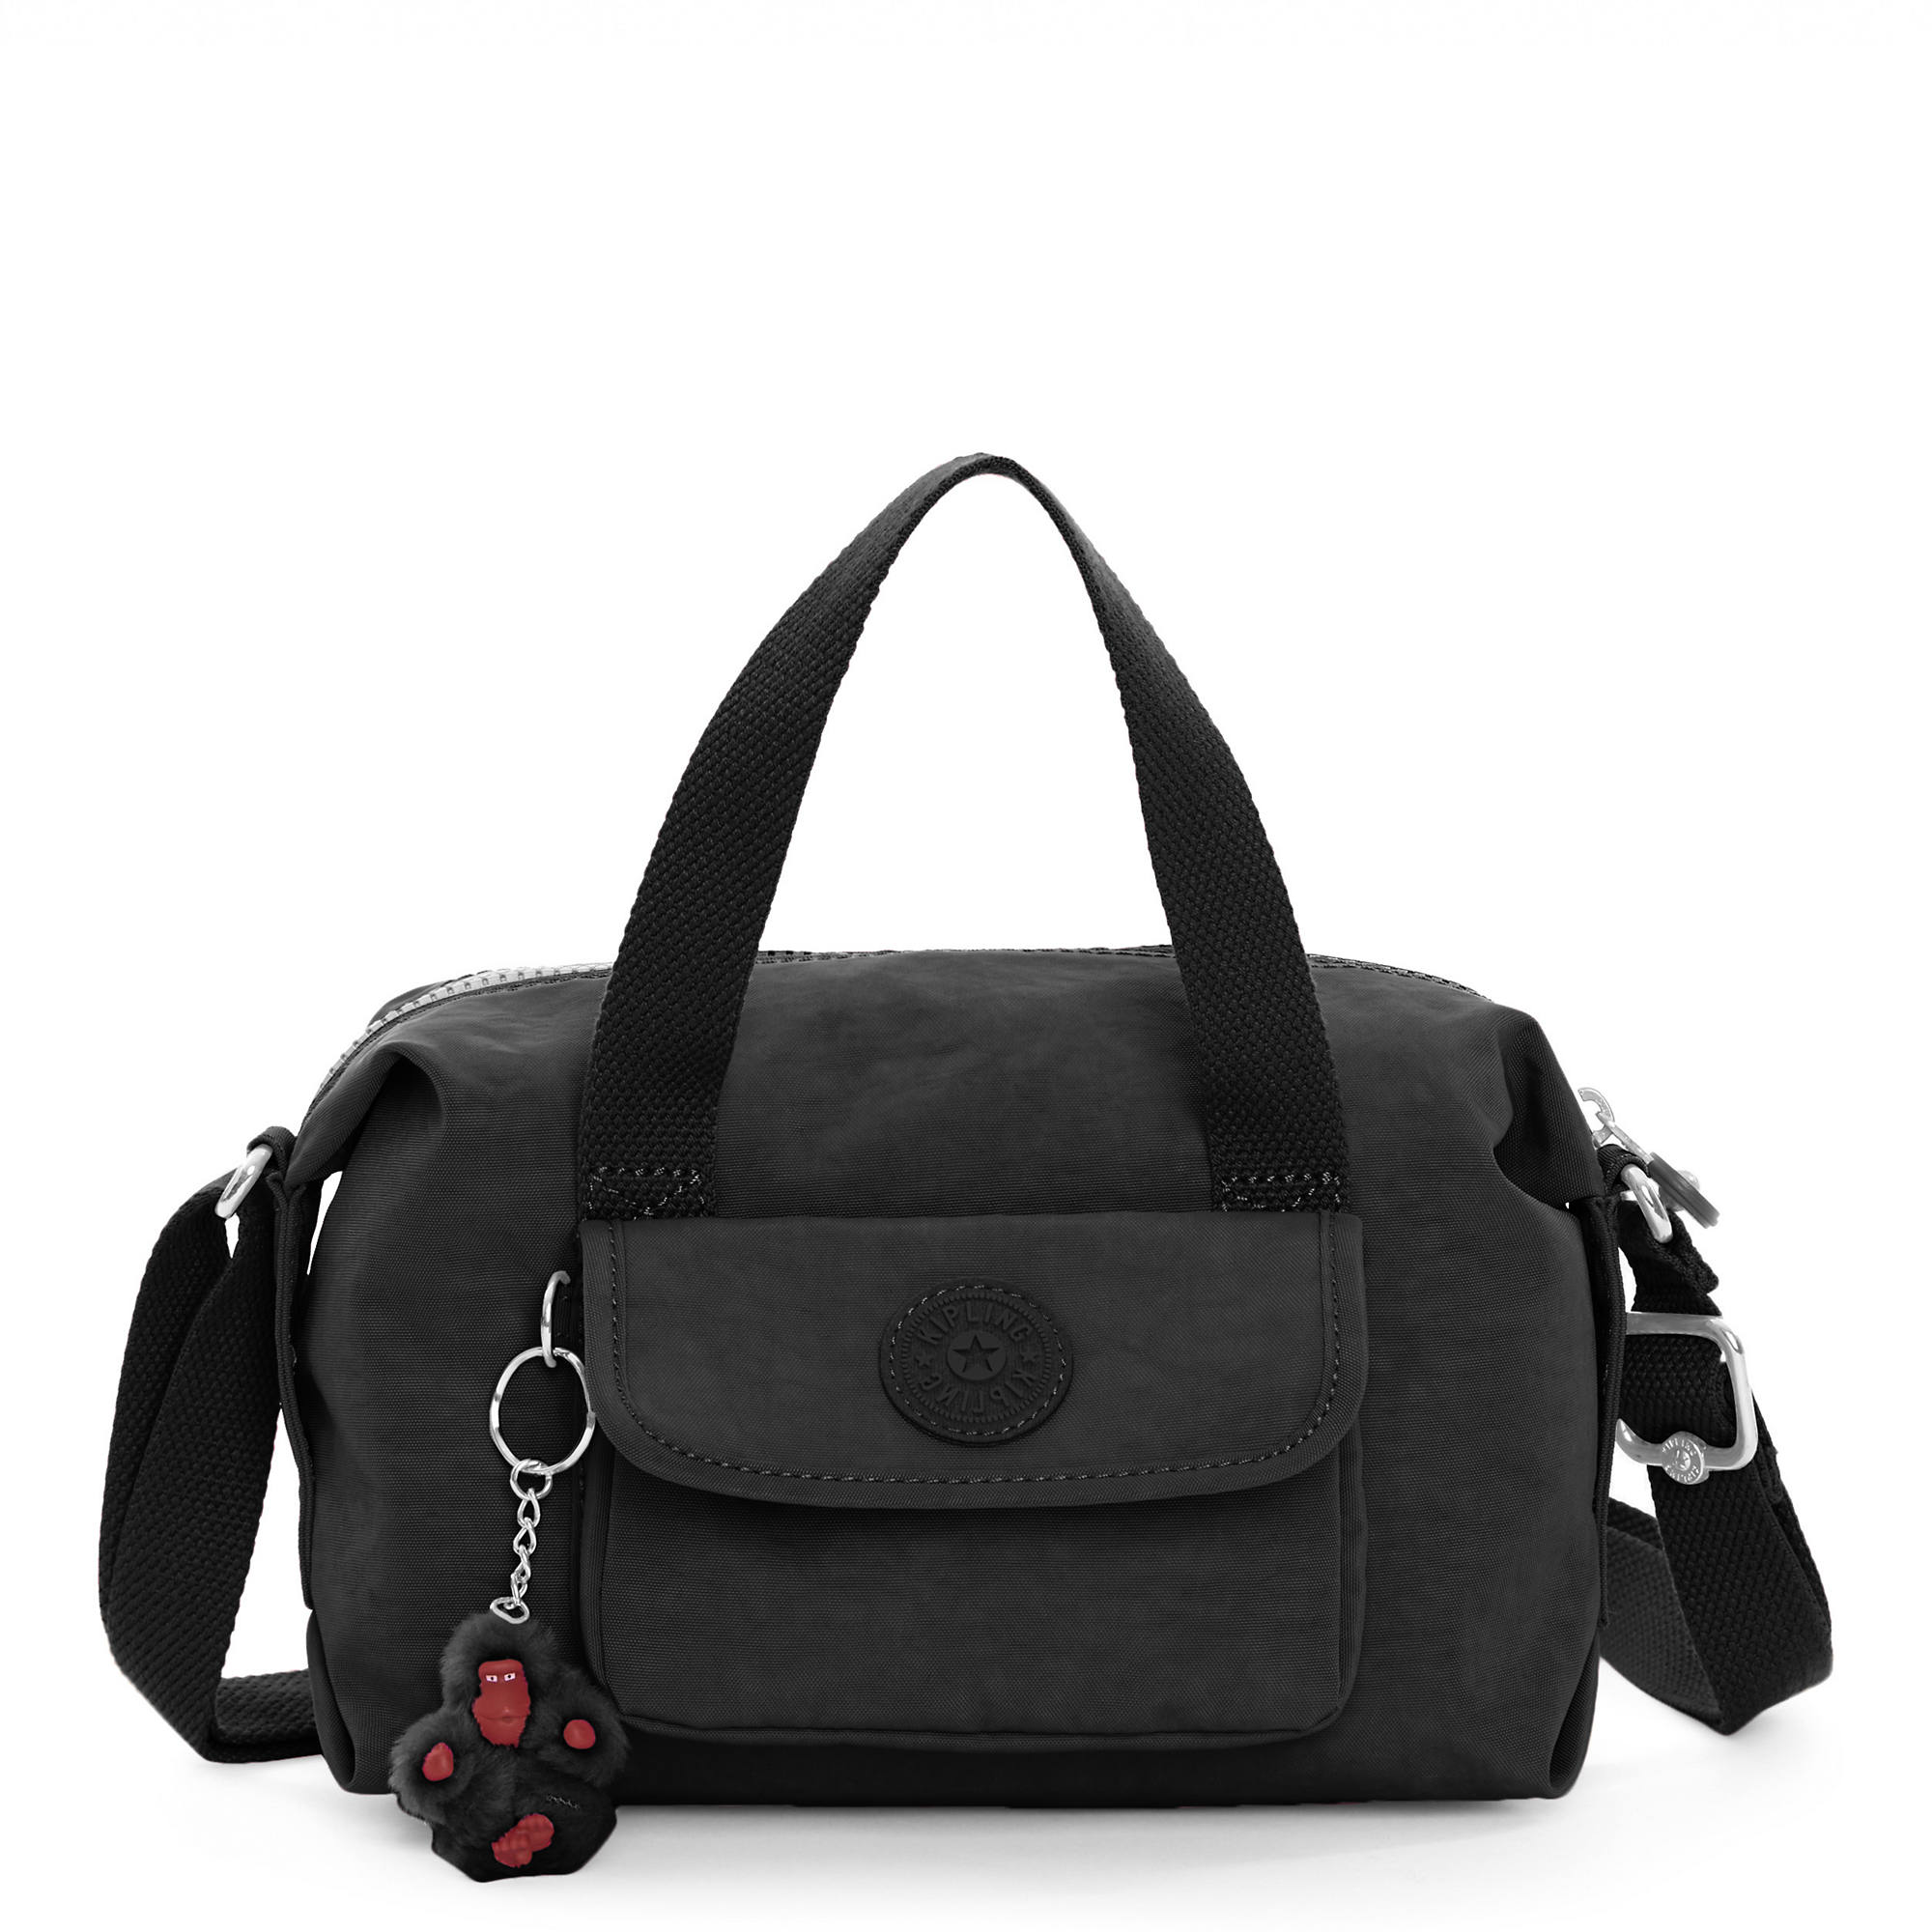 Brynne Handbag Black Large